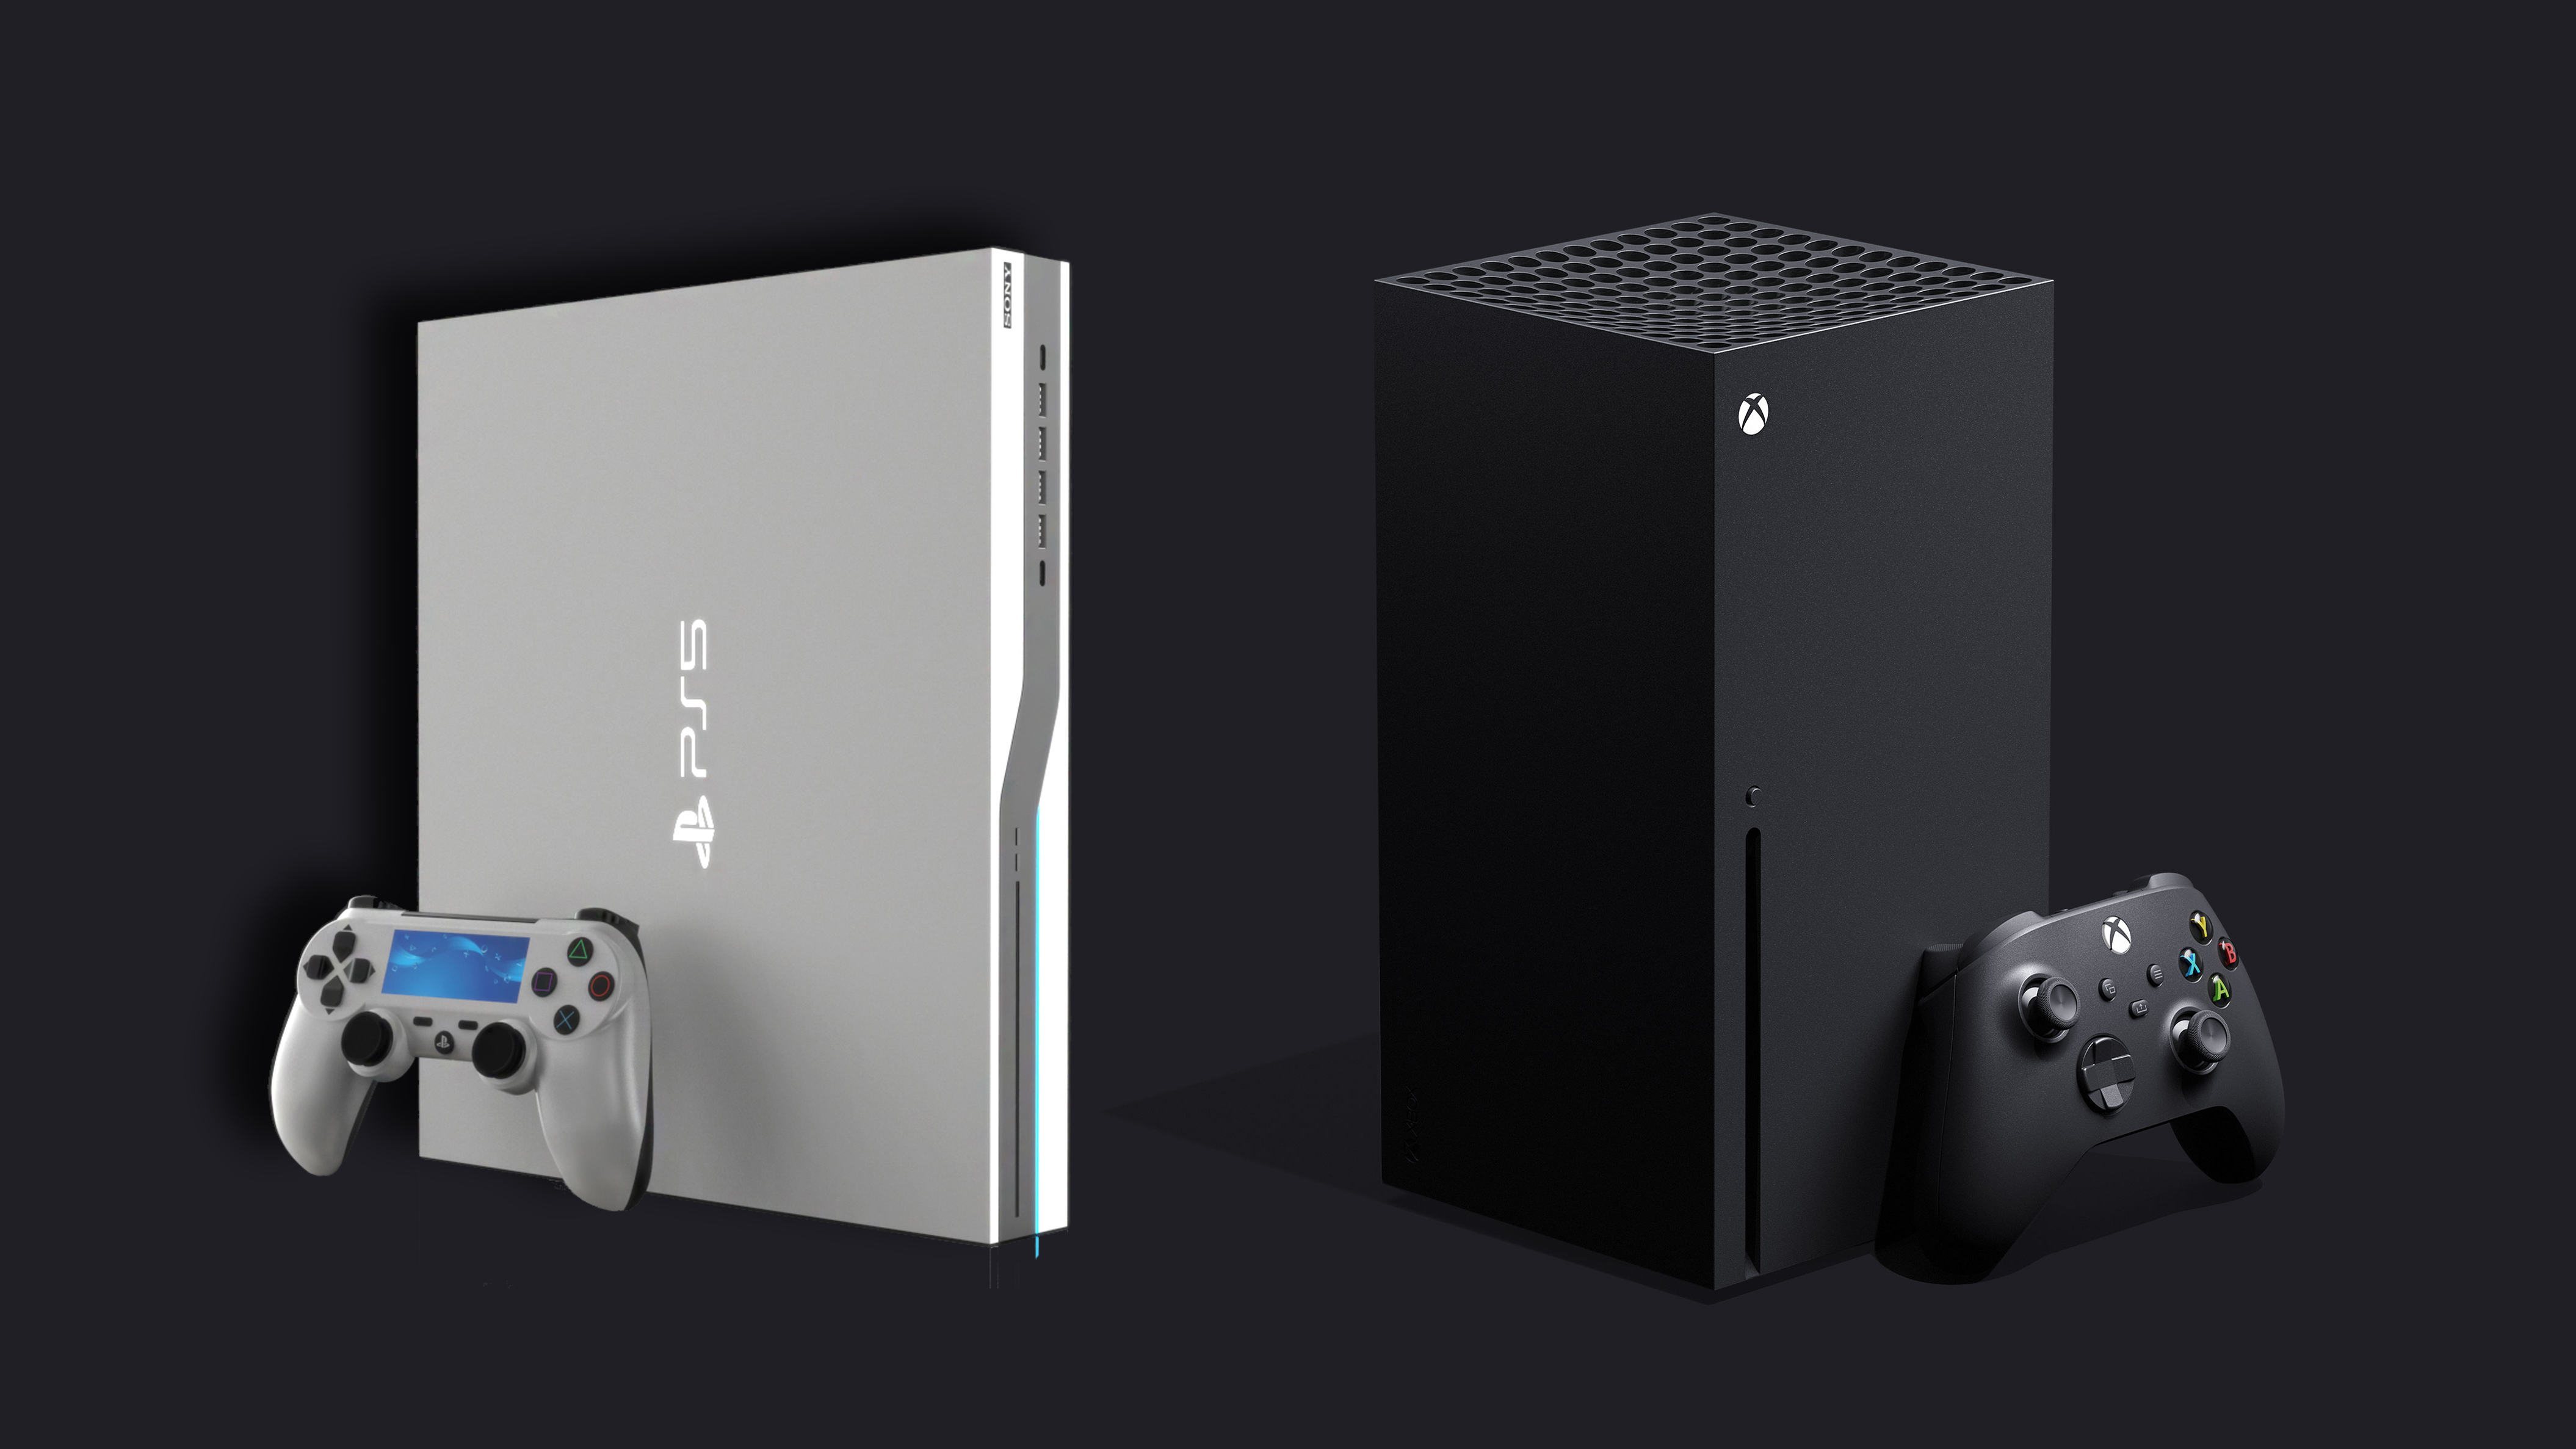 Ps5 Graphics Beaten By Xbox Series X In Shocking Left Field Analysis T3